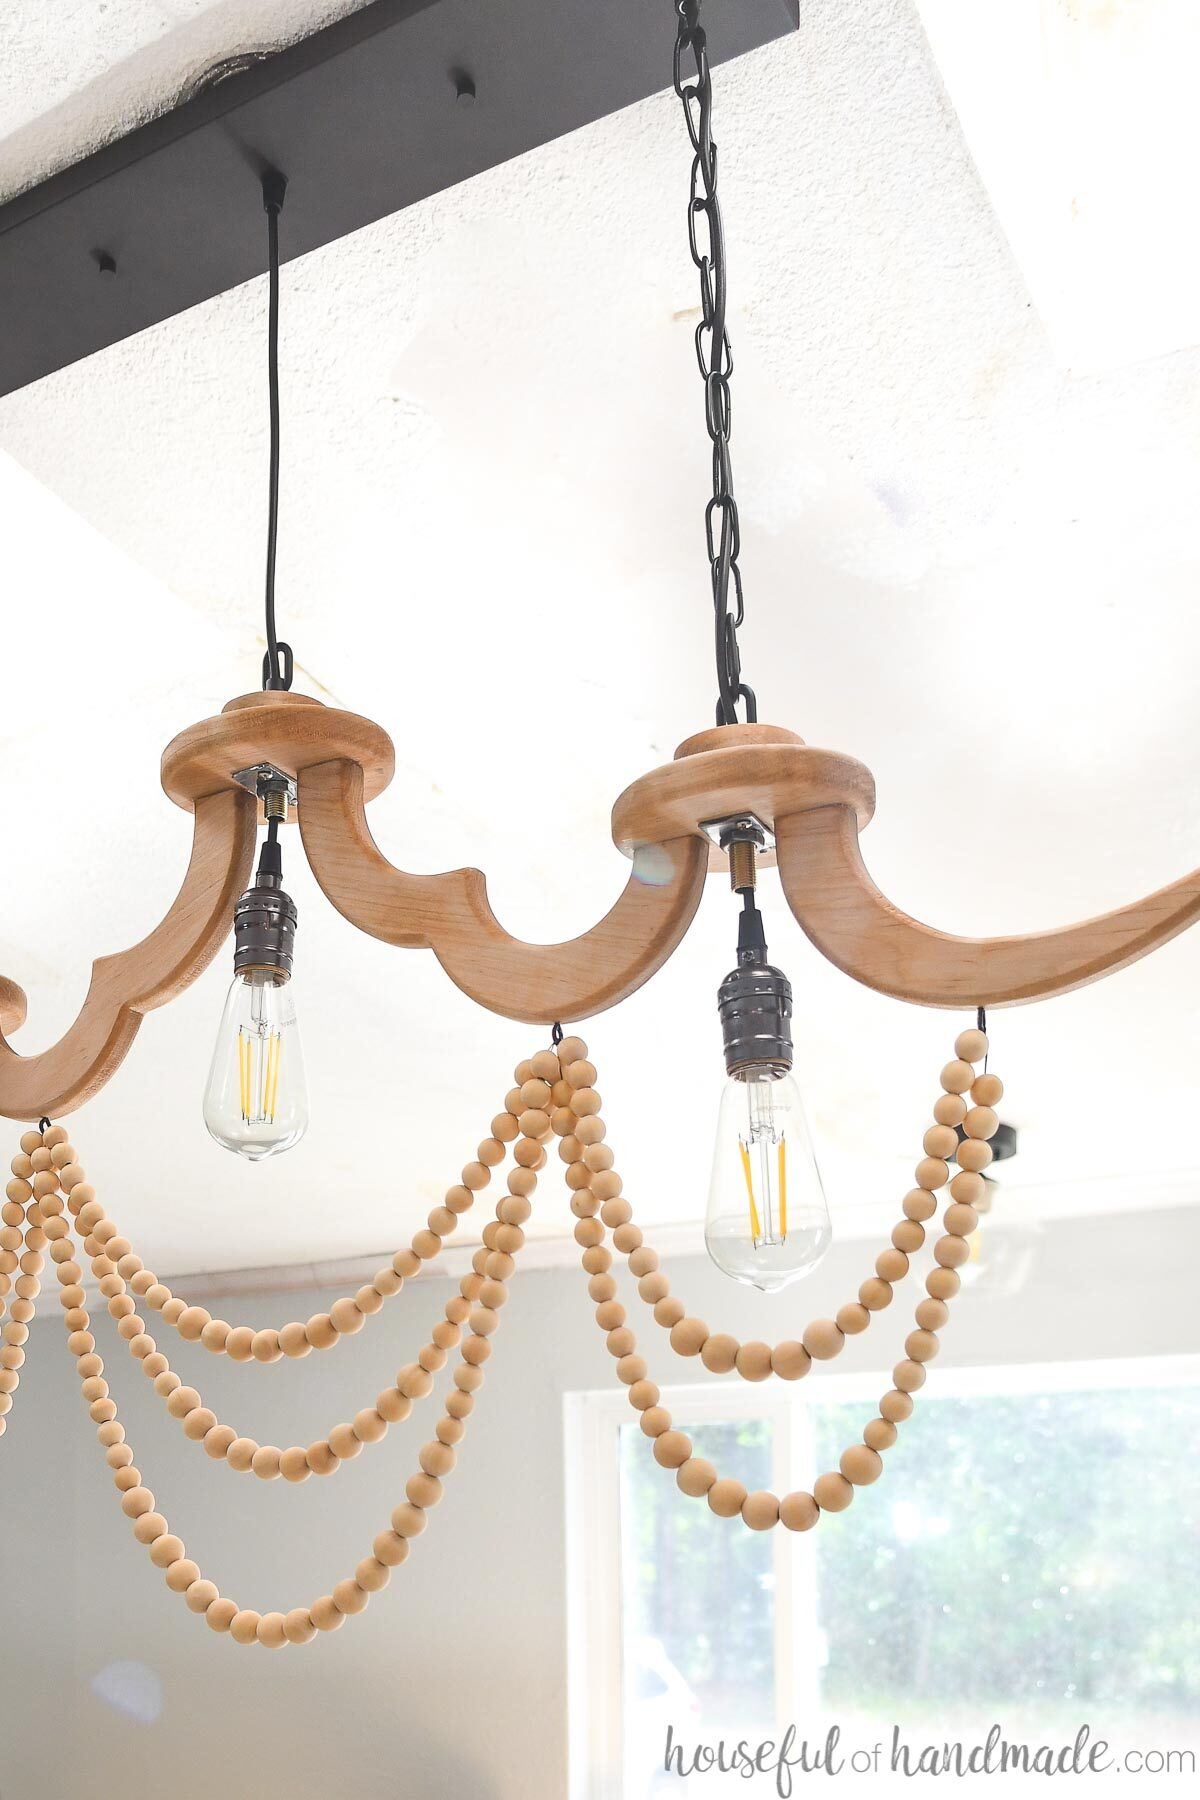 Half of the DIY linear chandelier with wood beads and eddison lightbulbs in it hanging on the ceiling.